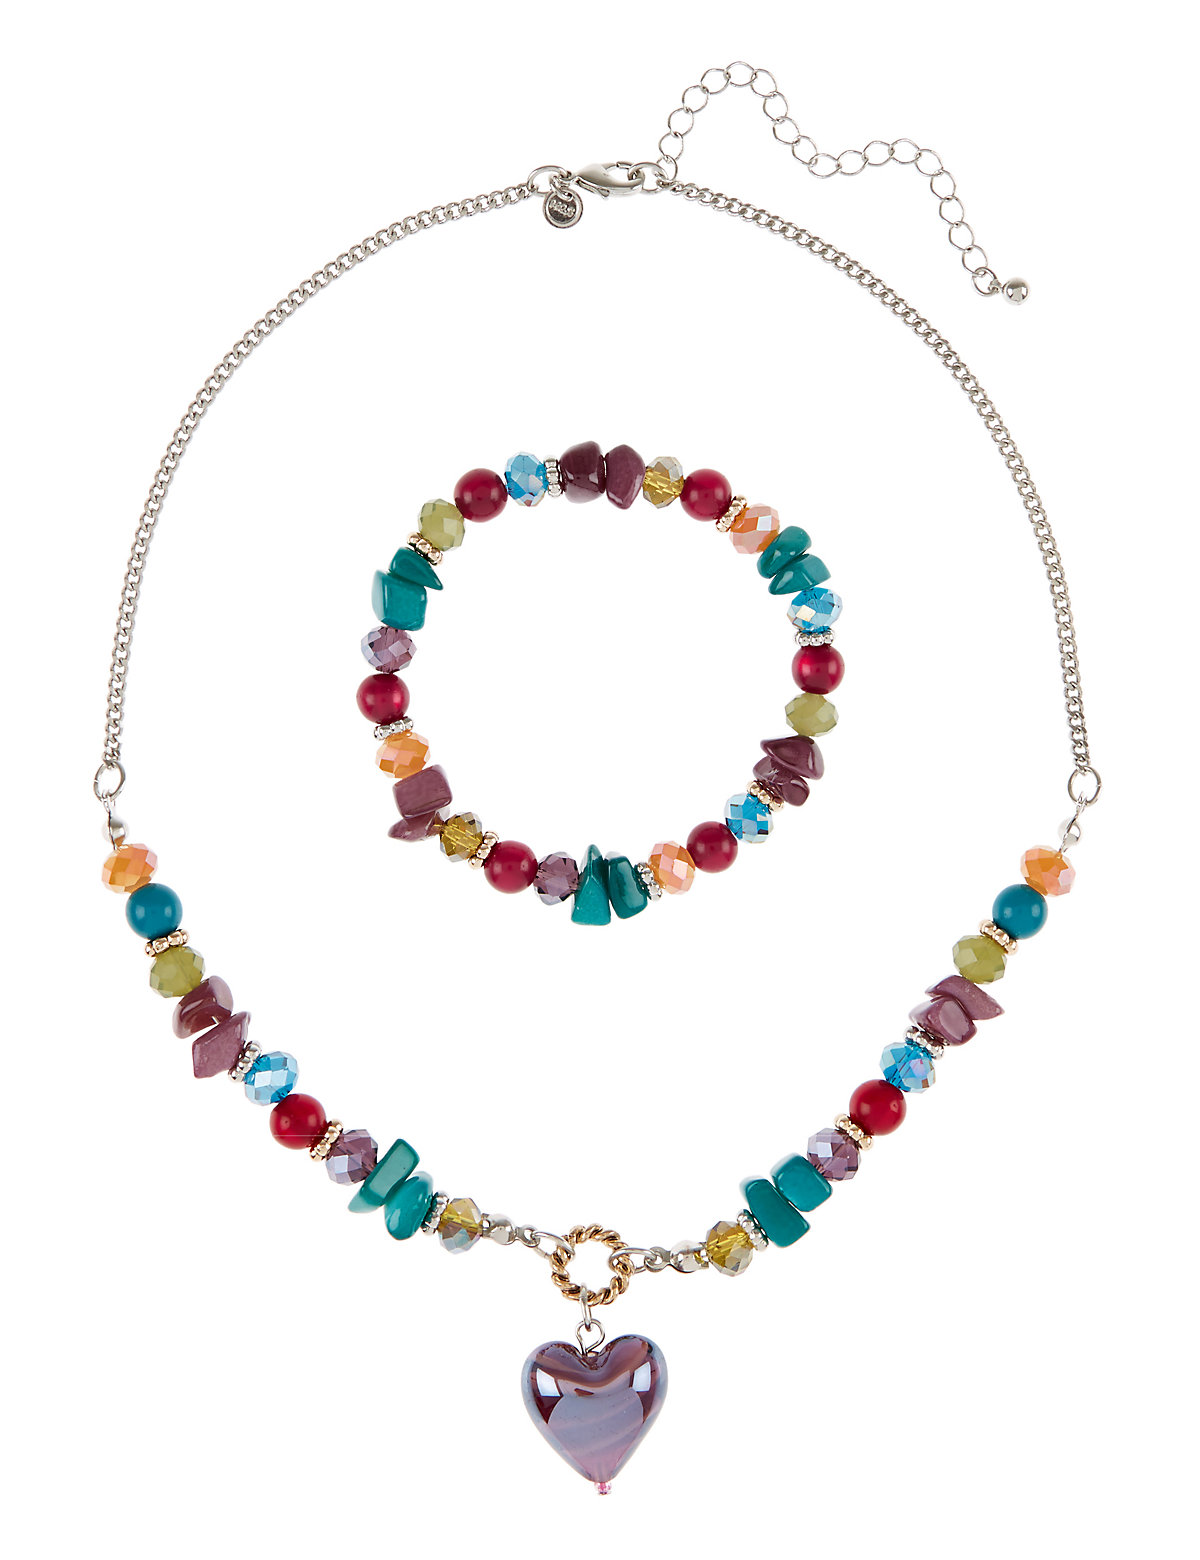 Assorted Bead Heart Pendant Necklace Bracelet Set Multi Coloured One Size